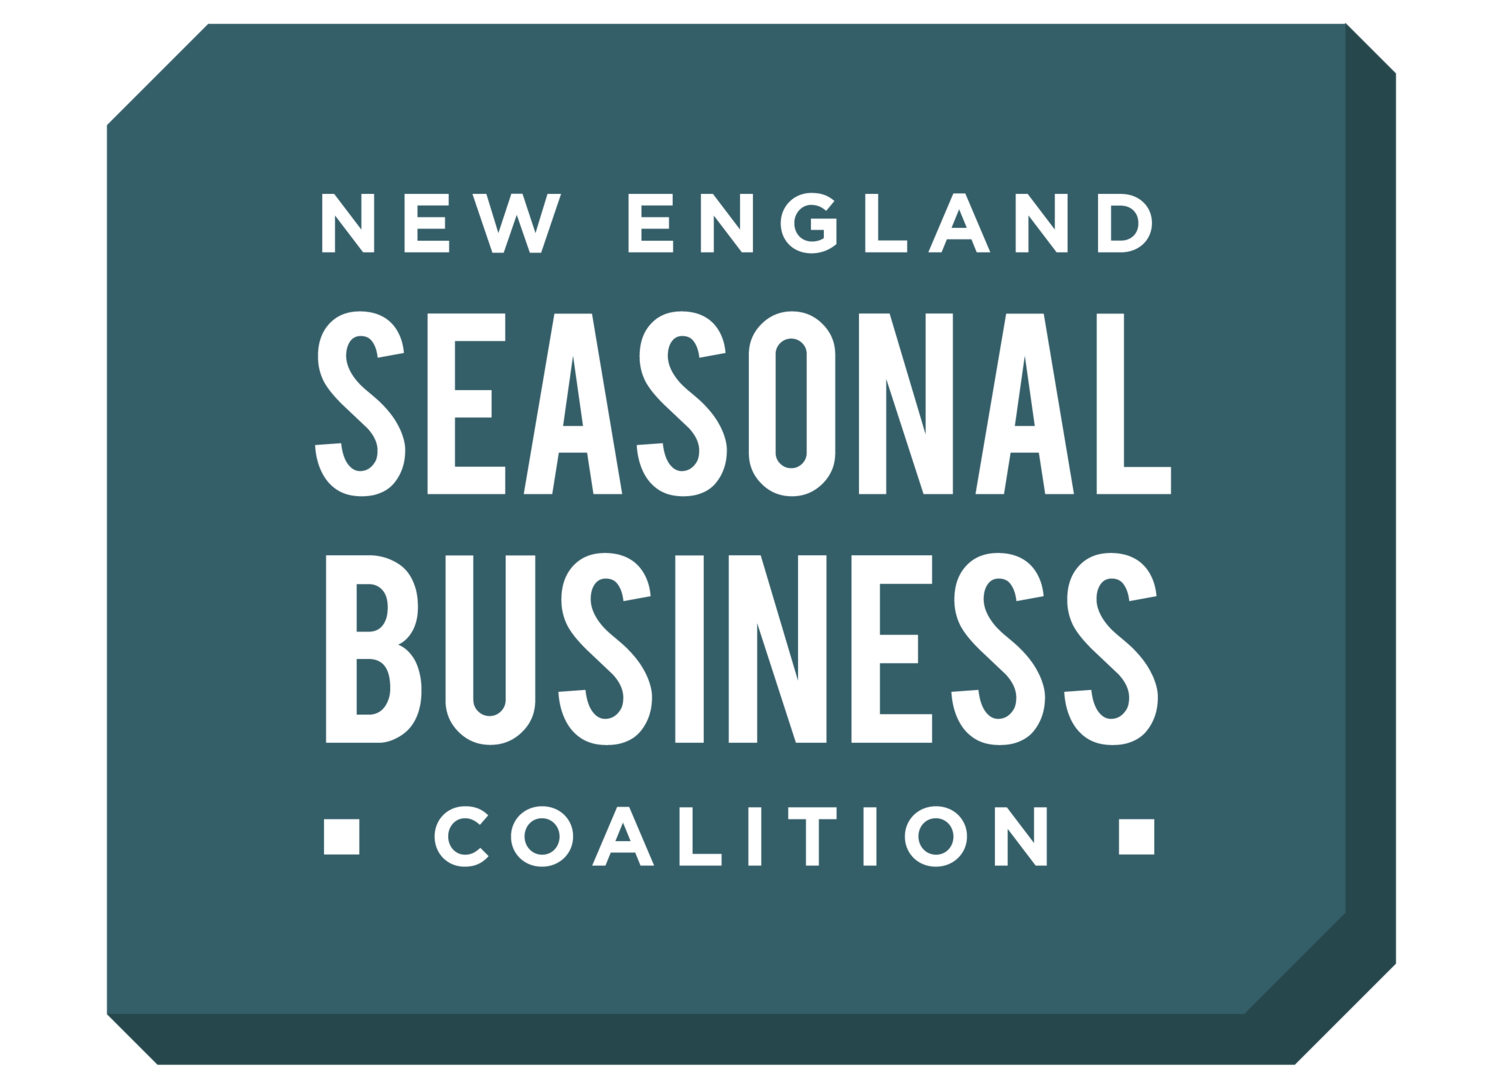 New England Seasonal Business Coalition